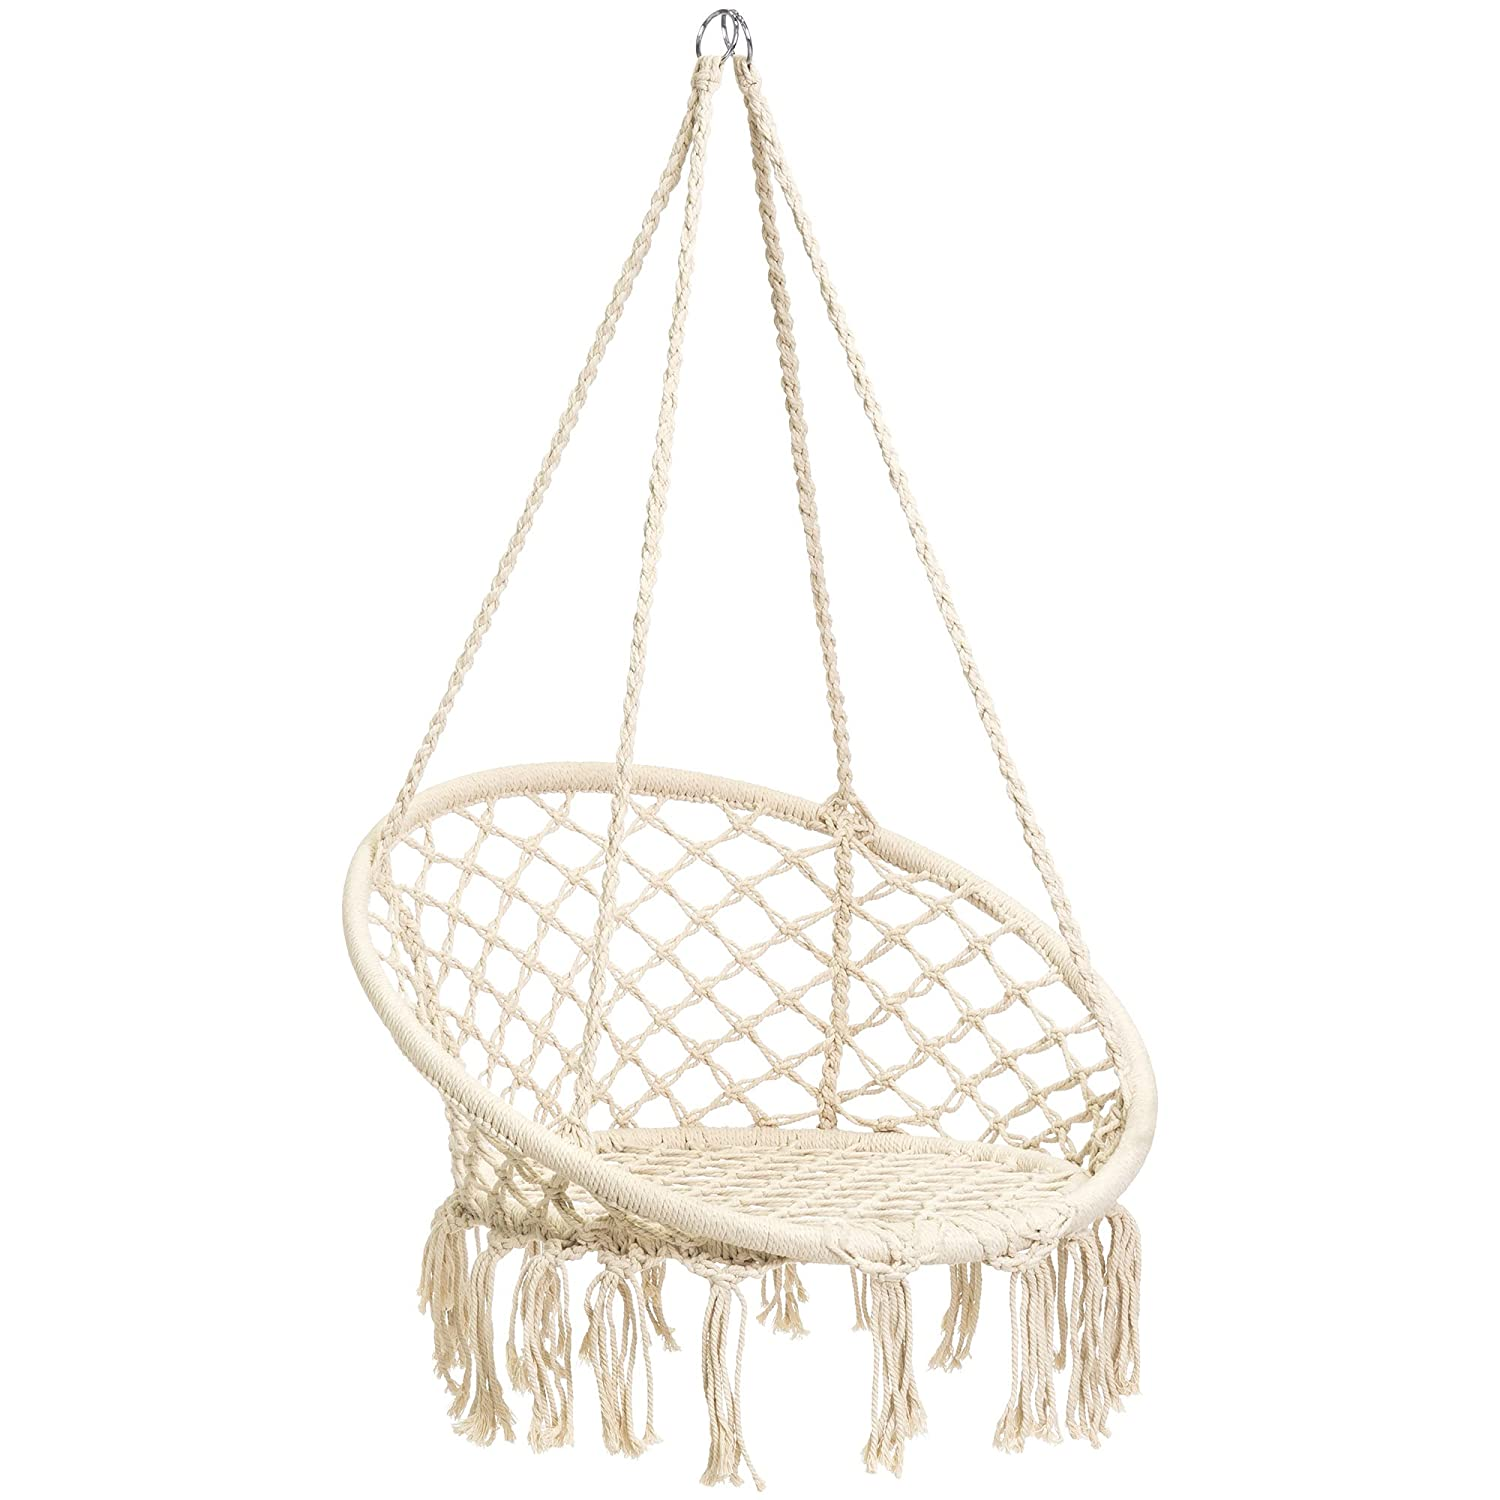 Best Choice Products Indoor Outdoor Hanging Cotton Macramé Rope Hammock Lounge Swing Accent Chair w/Fringe Tassels, Beige